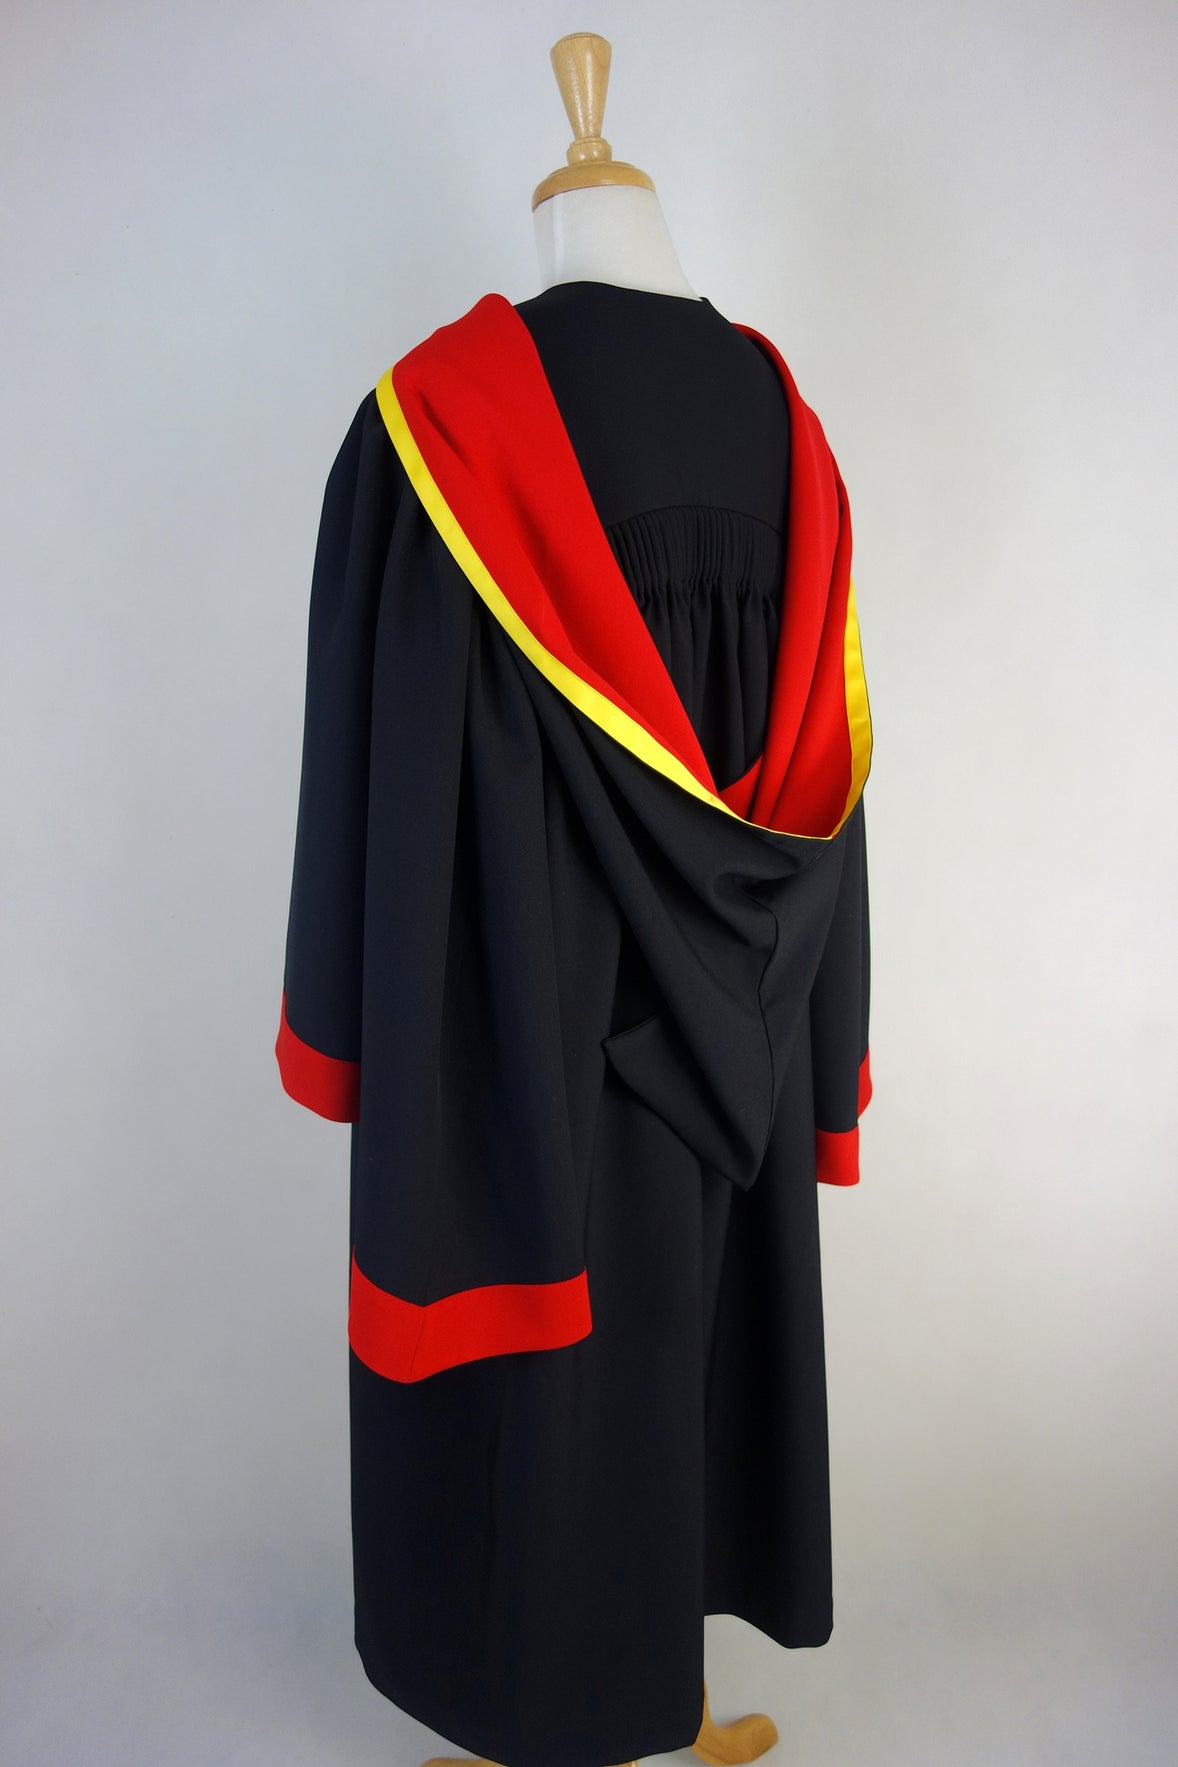 University of South Australia PhD Graduation Gown Suite